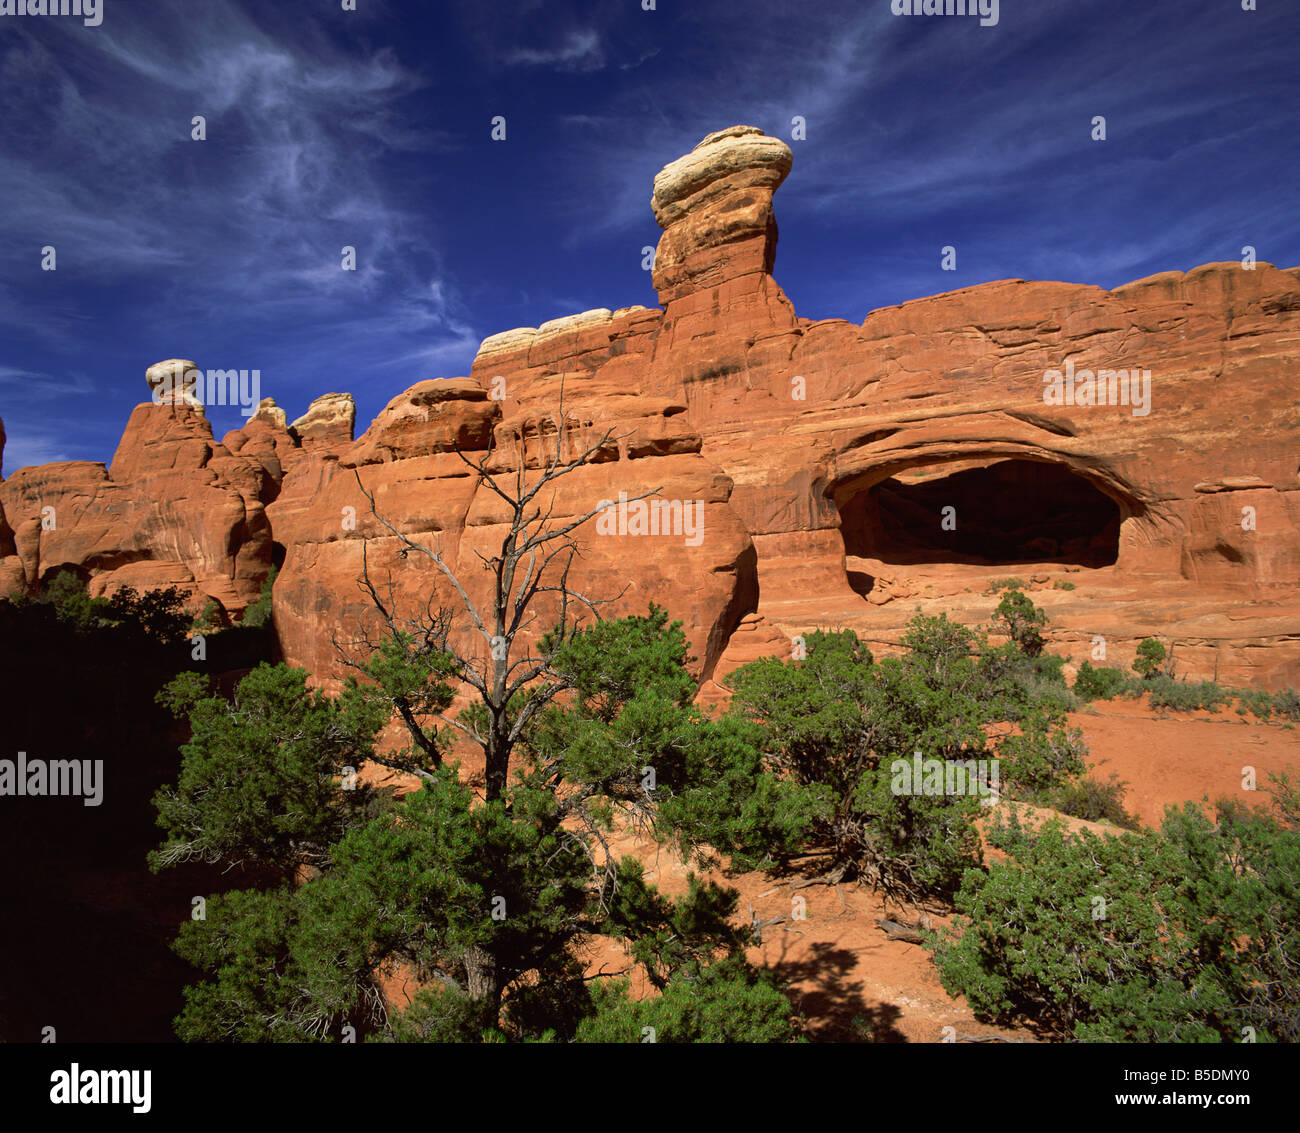 Tower Arch Klondike Bluffs Arches National Park Utah United States of America North America - Stock Image